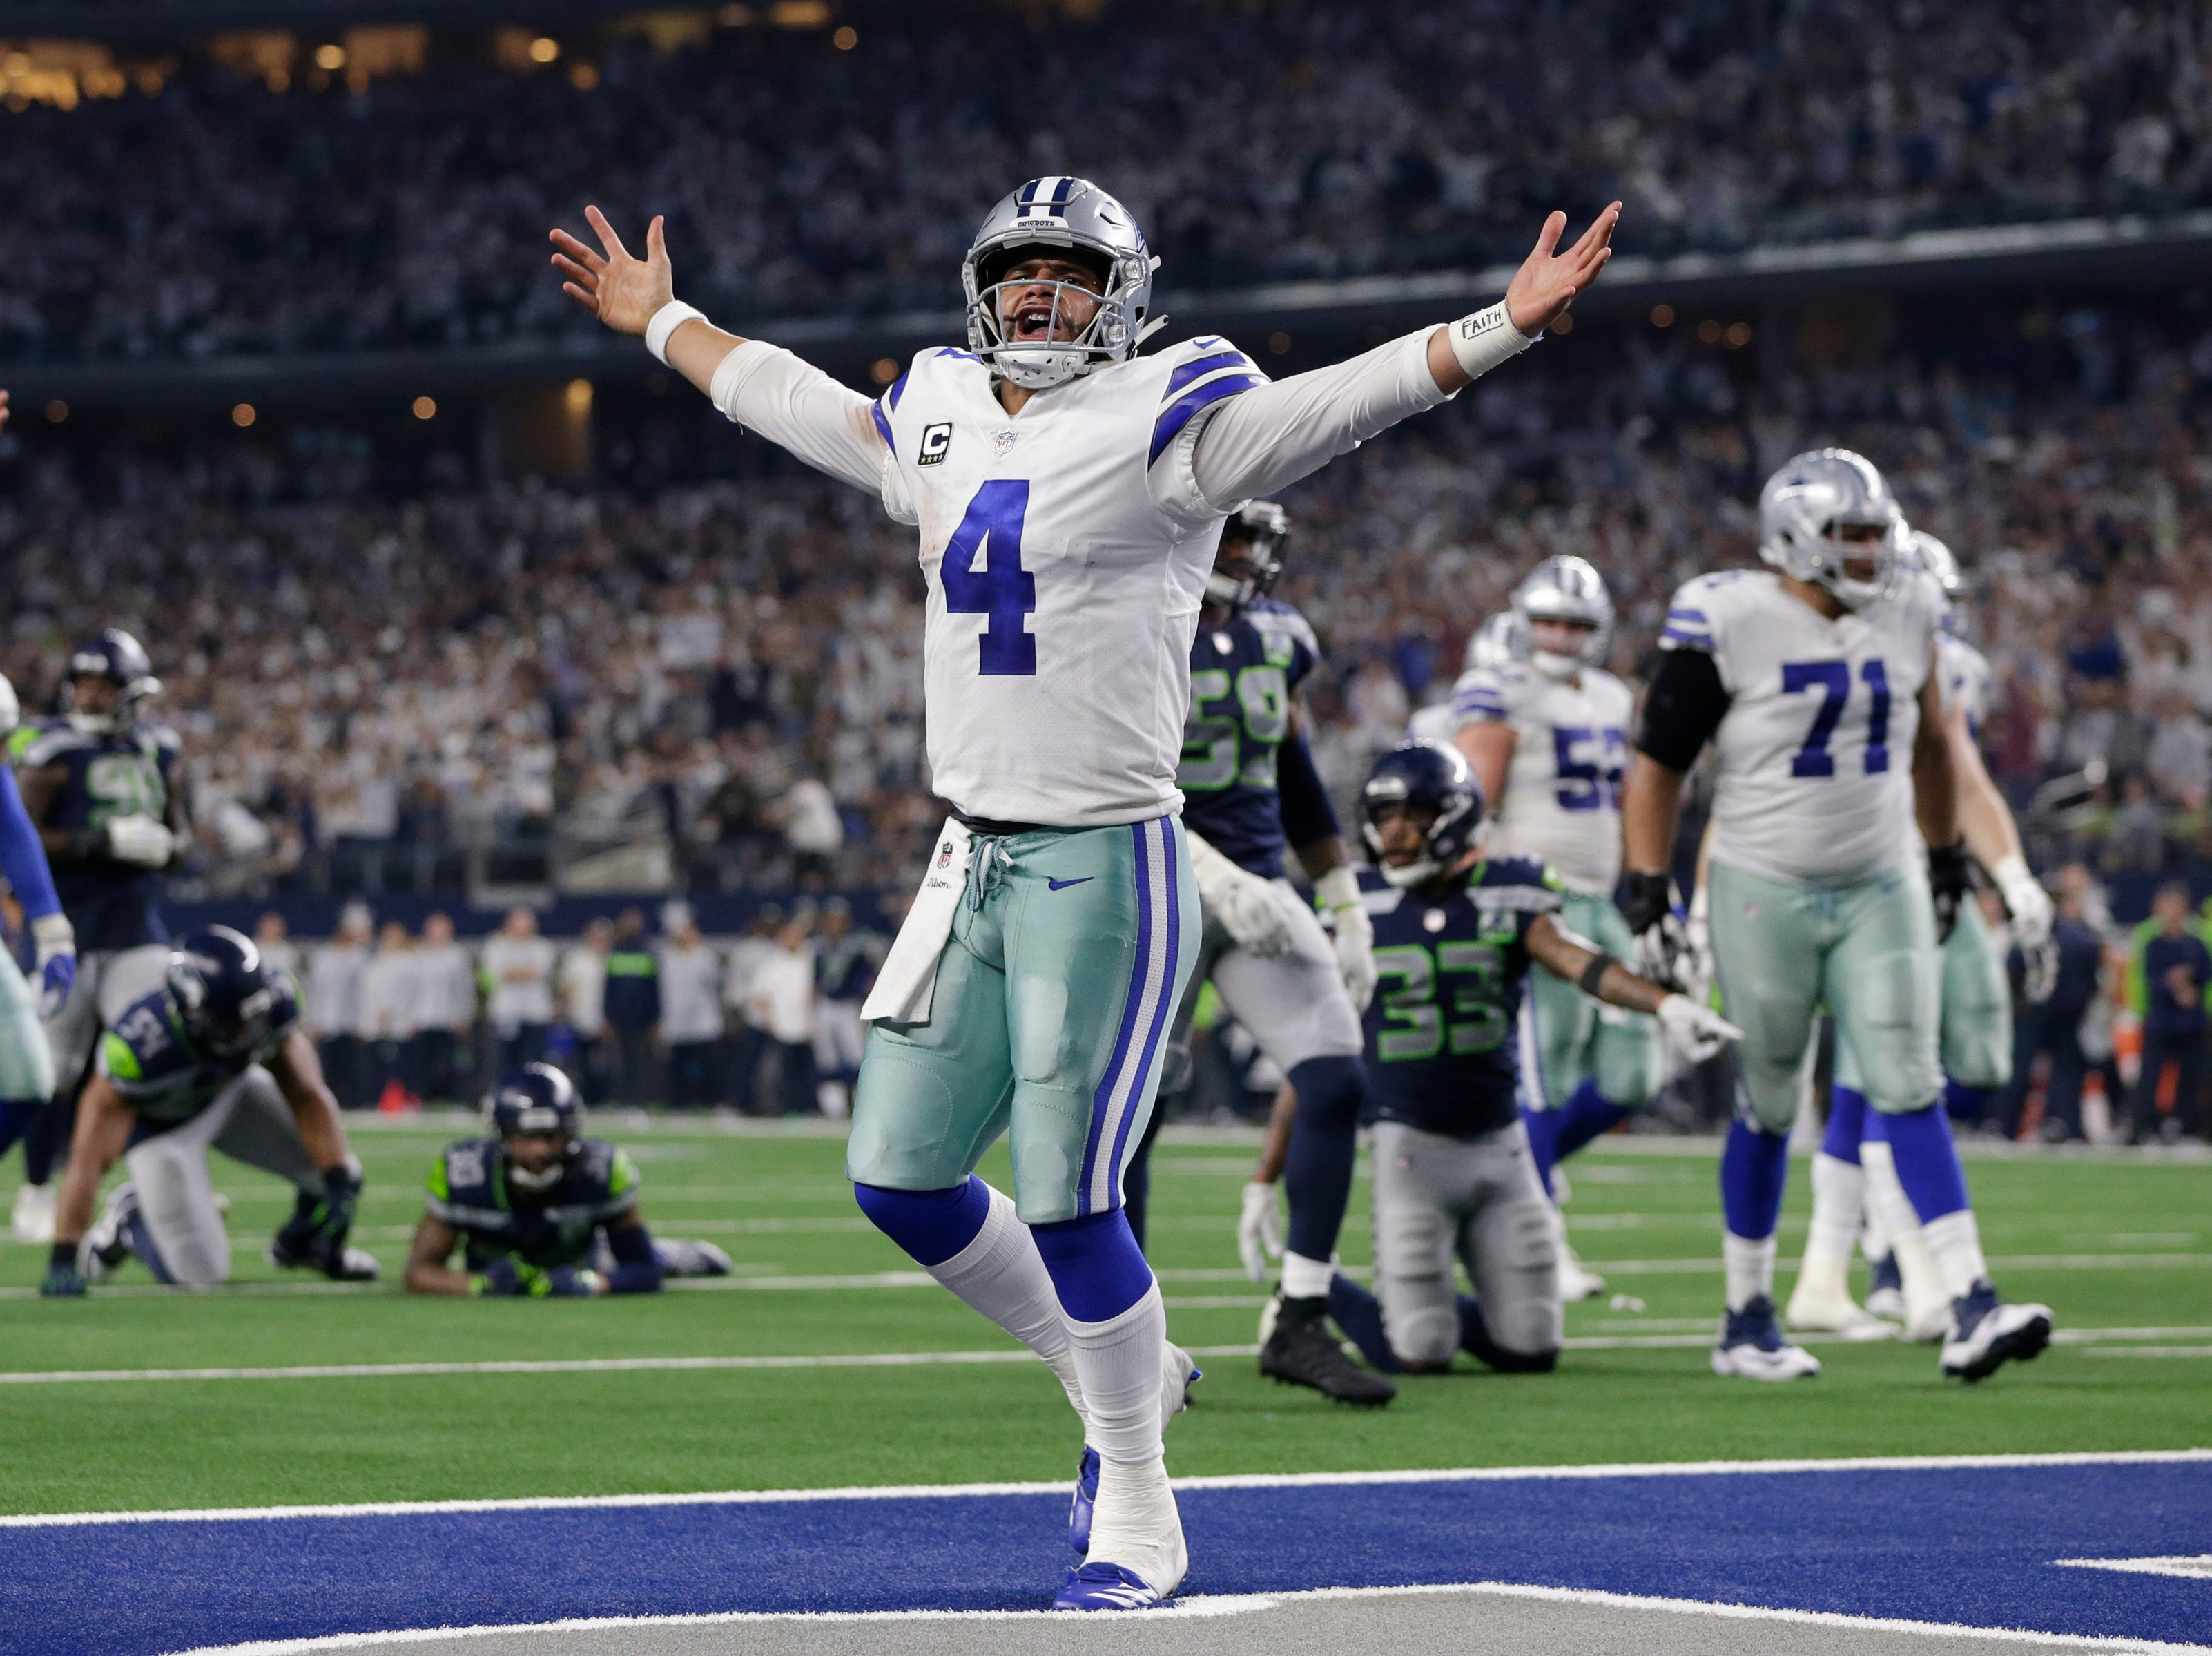 Dallas Cowboys quarterback Dak Prescott (4) reacts to running down to the 1-yard line in the fourth quarter at AT&T Stadium.